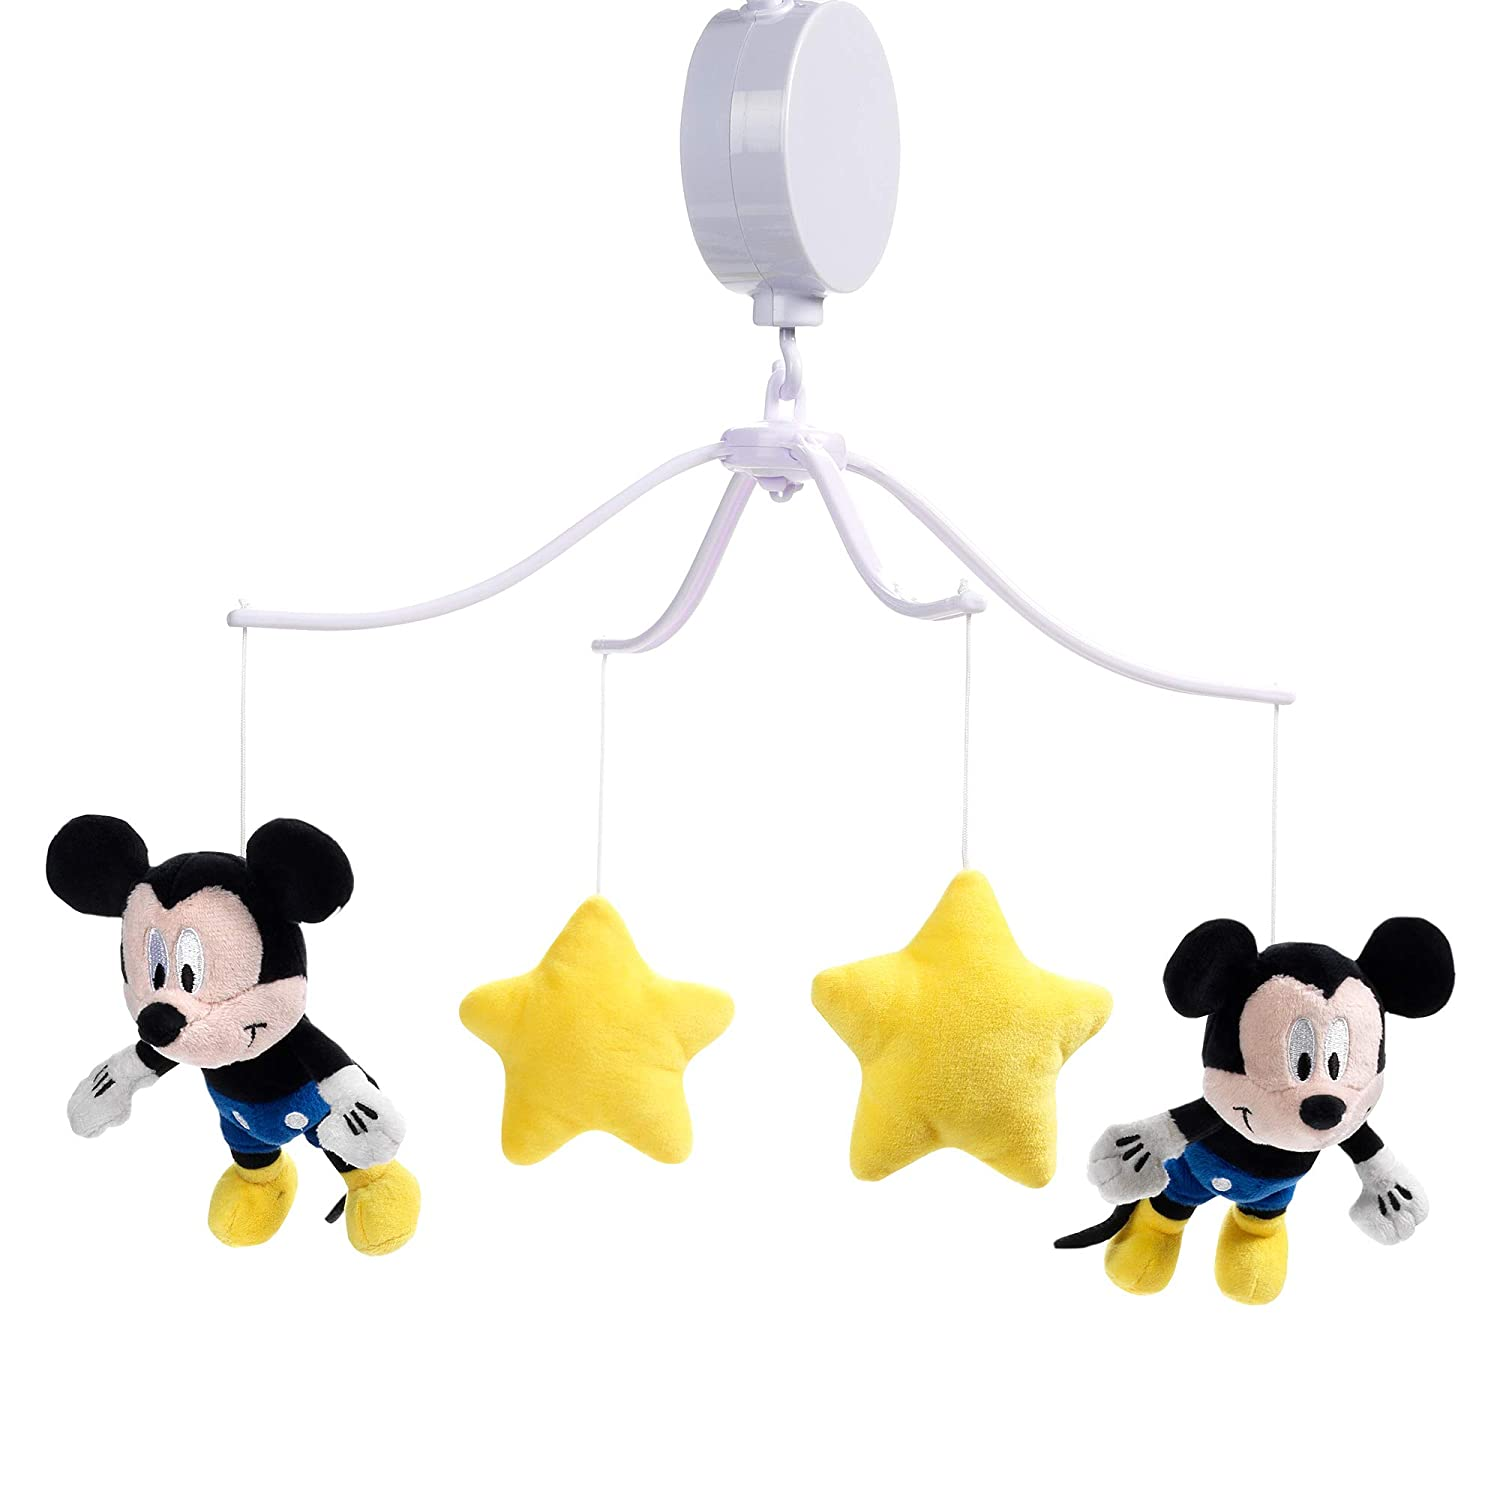 Lambs Ivy 人気ブランド セール商品 Forever Mickey Mouse Musical Crib - Baby Mobile Yell